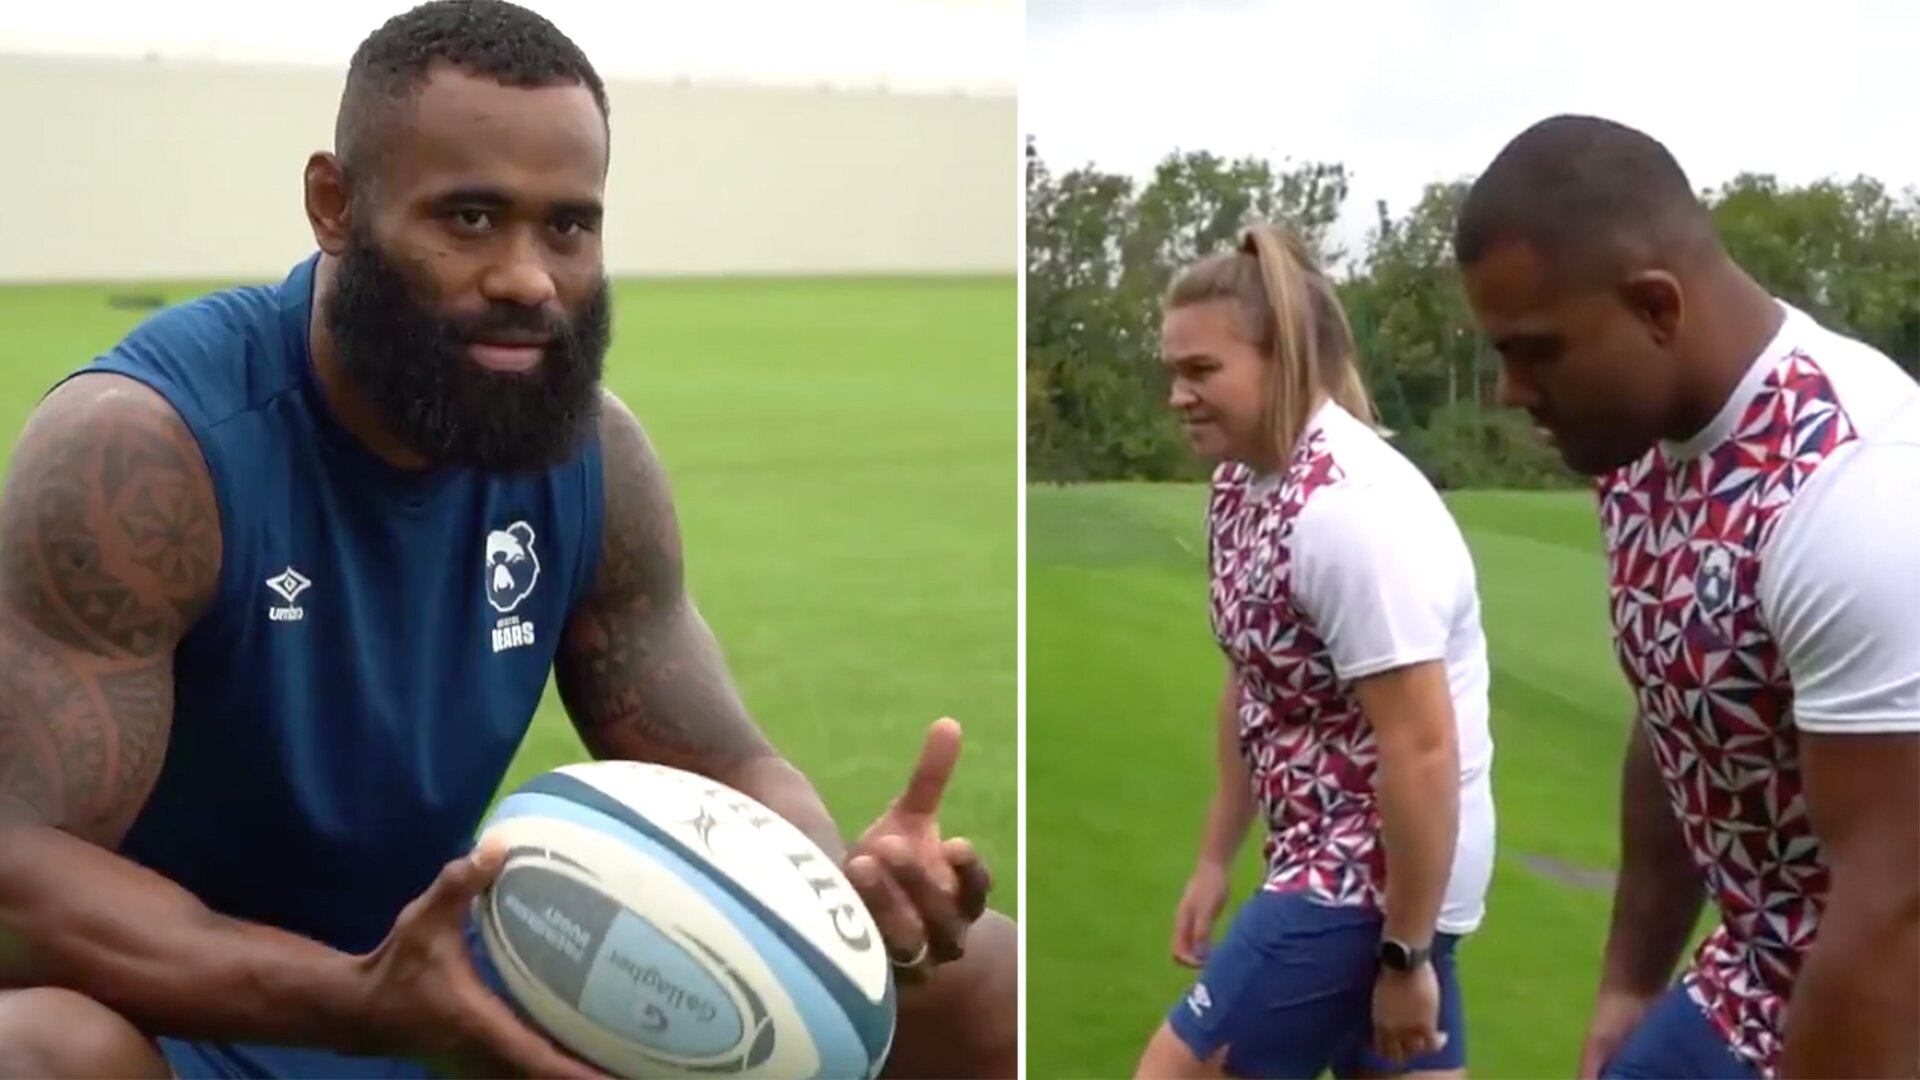 Bristol Bears have just given us a hint of what Umbro will do with the England rugby kit